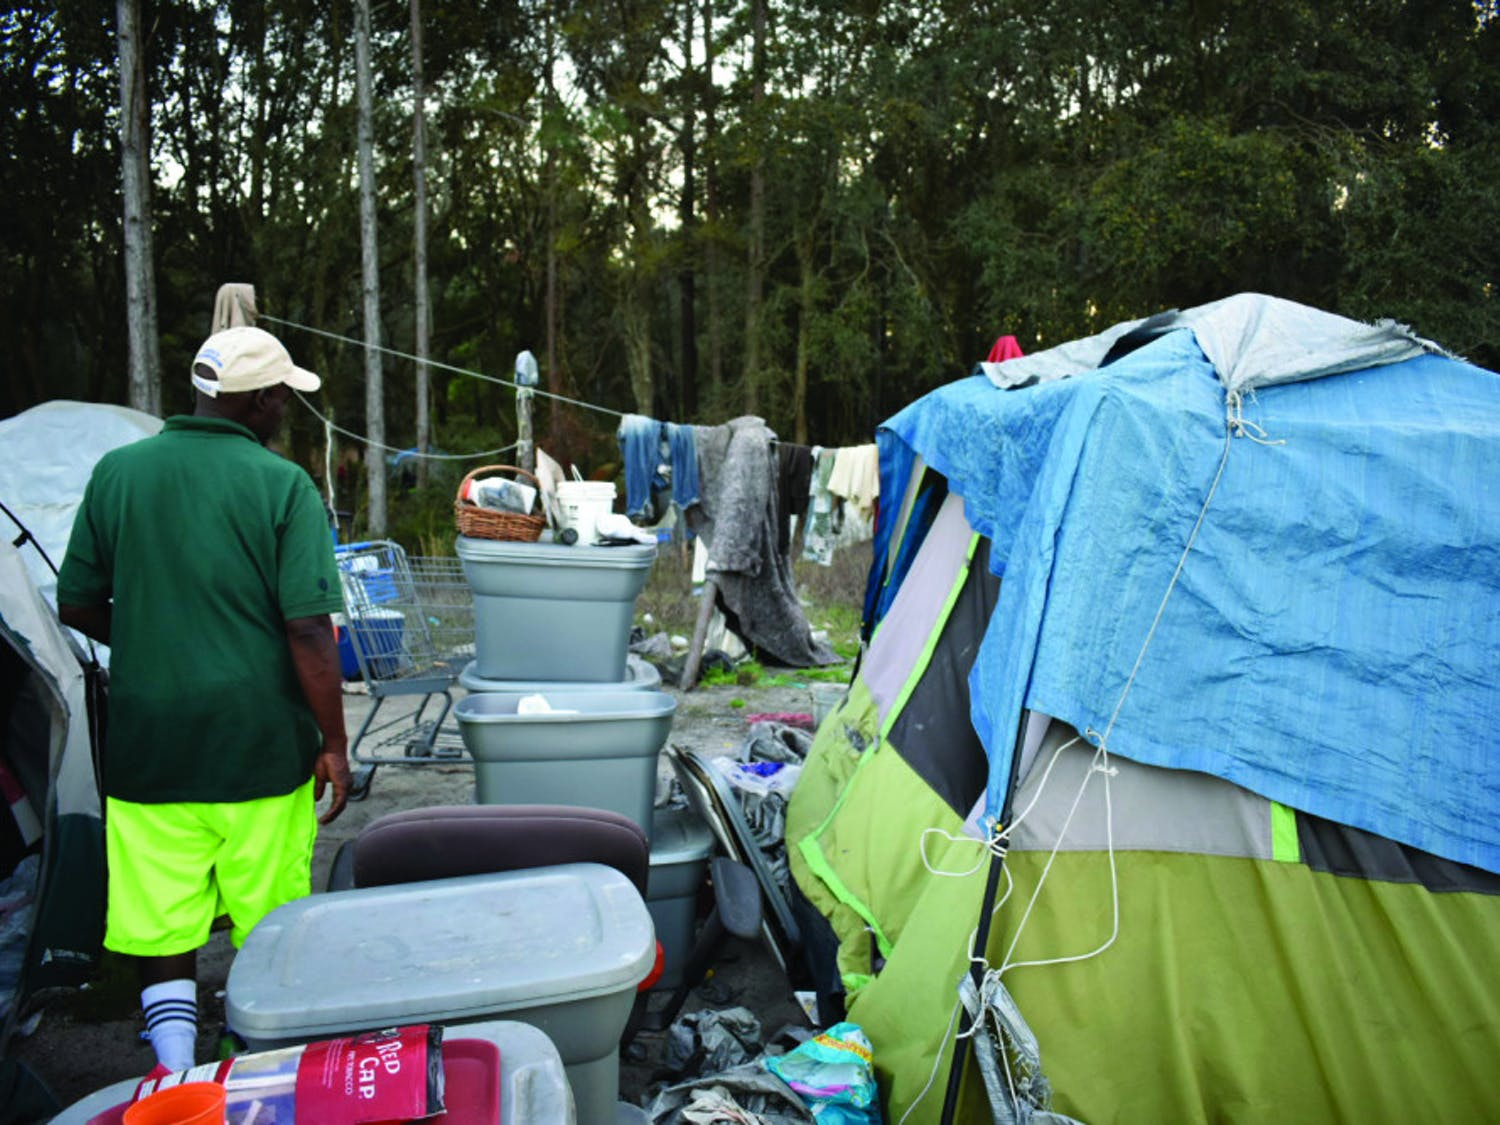 Rupert Heard, 55, gives a tour of his camp fit for three. As camp leader, he manages his group's finances and stocks up on daily supplies.